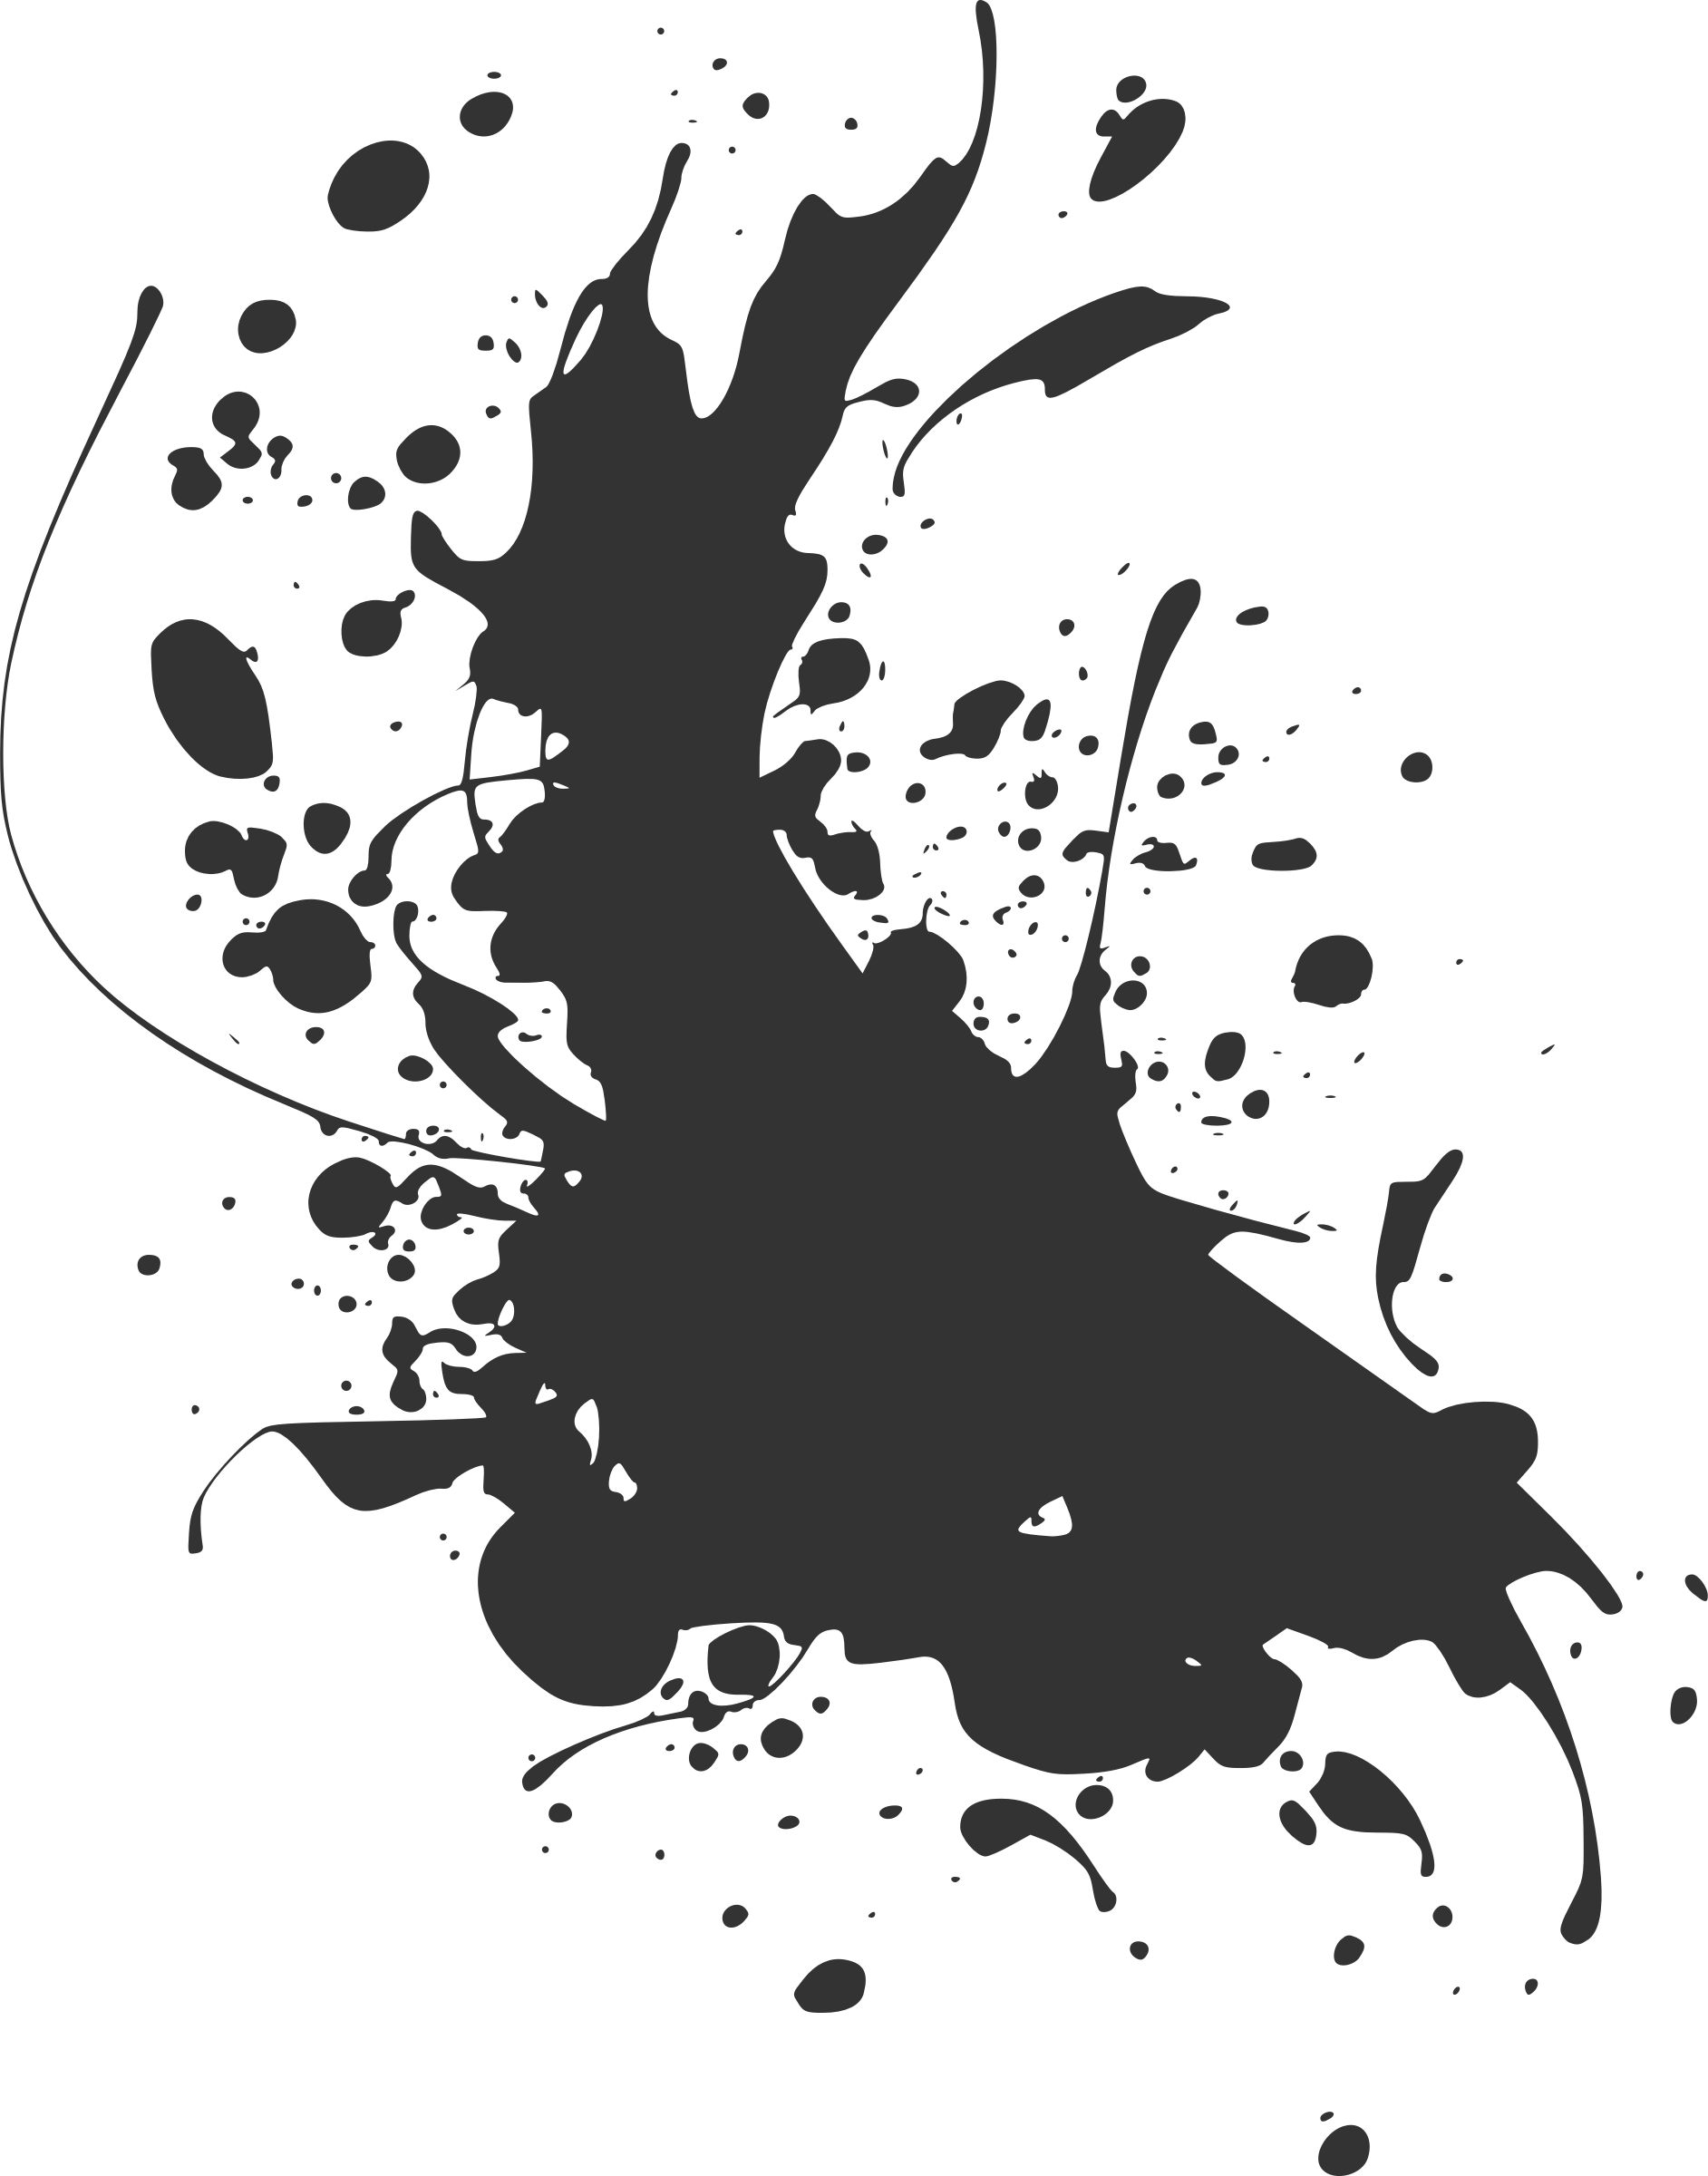 Ink splat png. Icons free and downloads